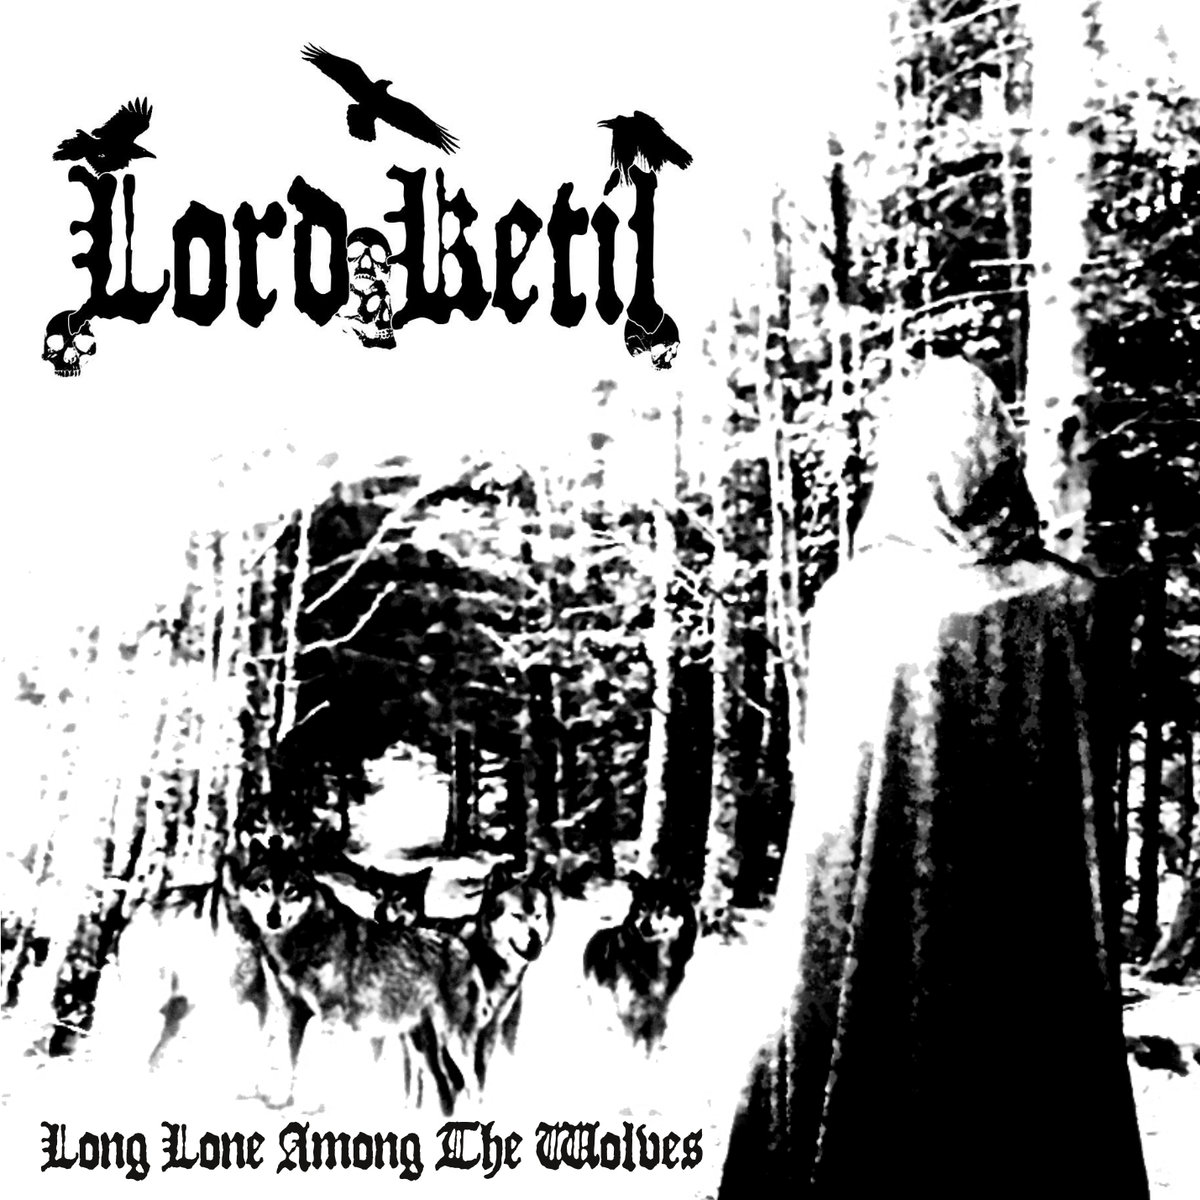 Lord Ketil - Long Lone Among The Wolves